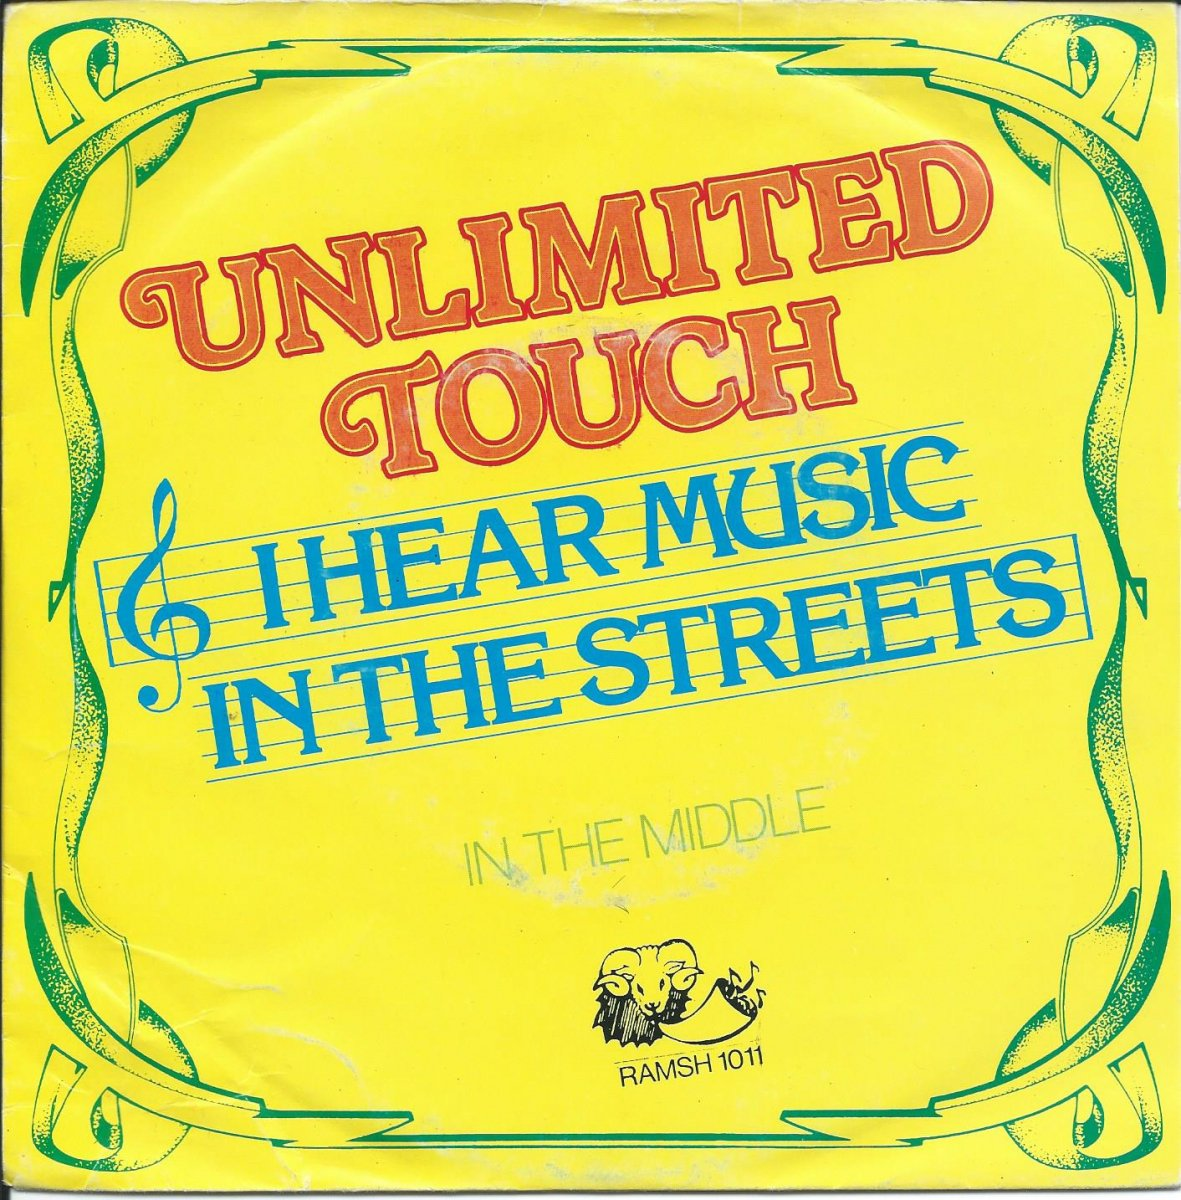 UNLIMITED TOUCH ‎/ I HEAR MUSIC IN THE STREETS / IN THE MIDDLE (7